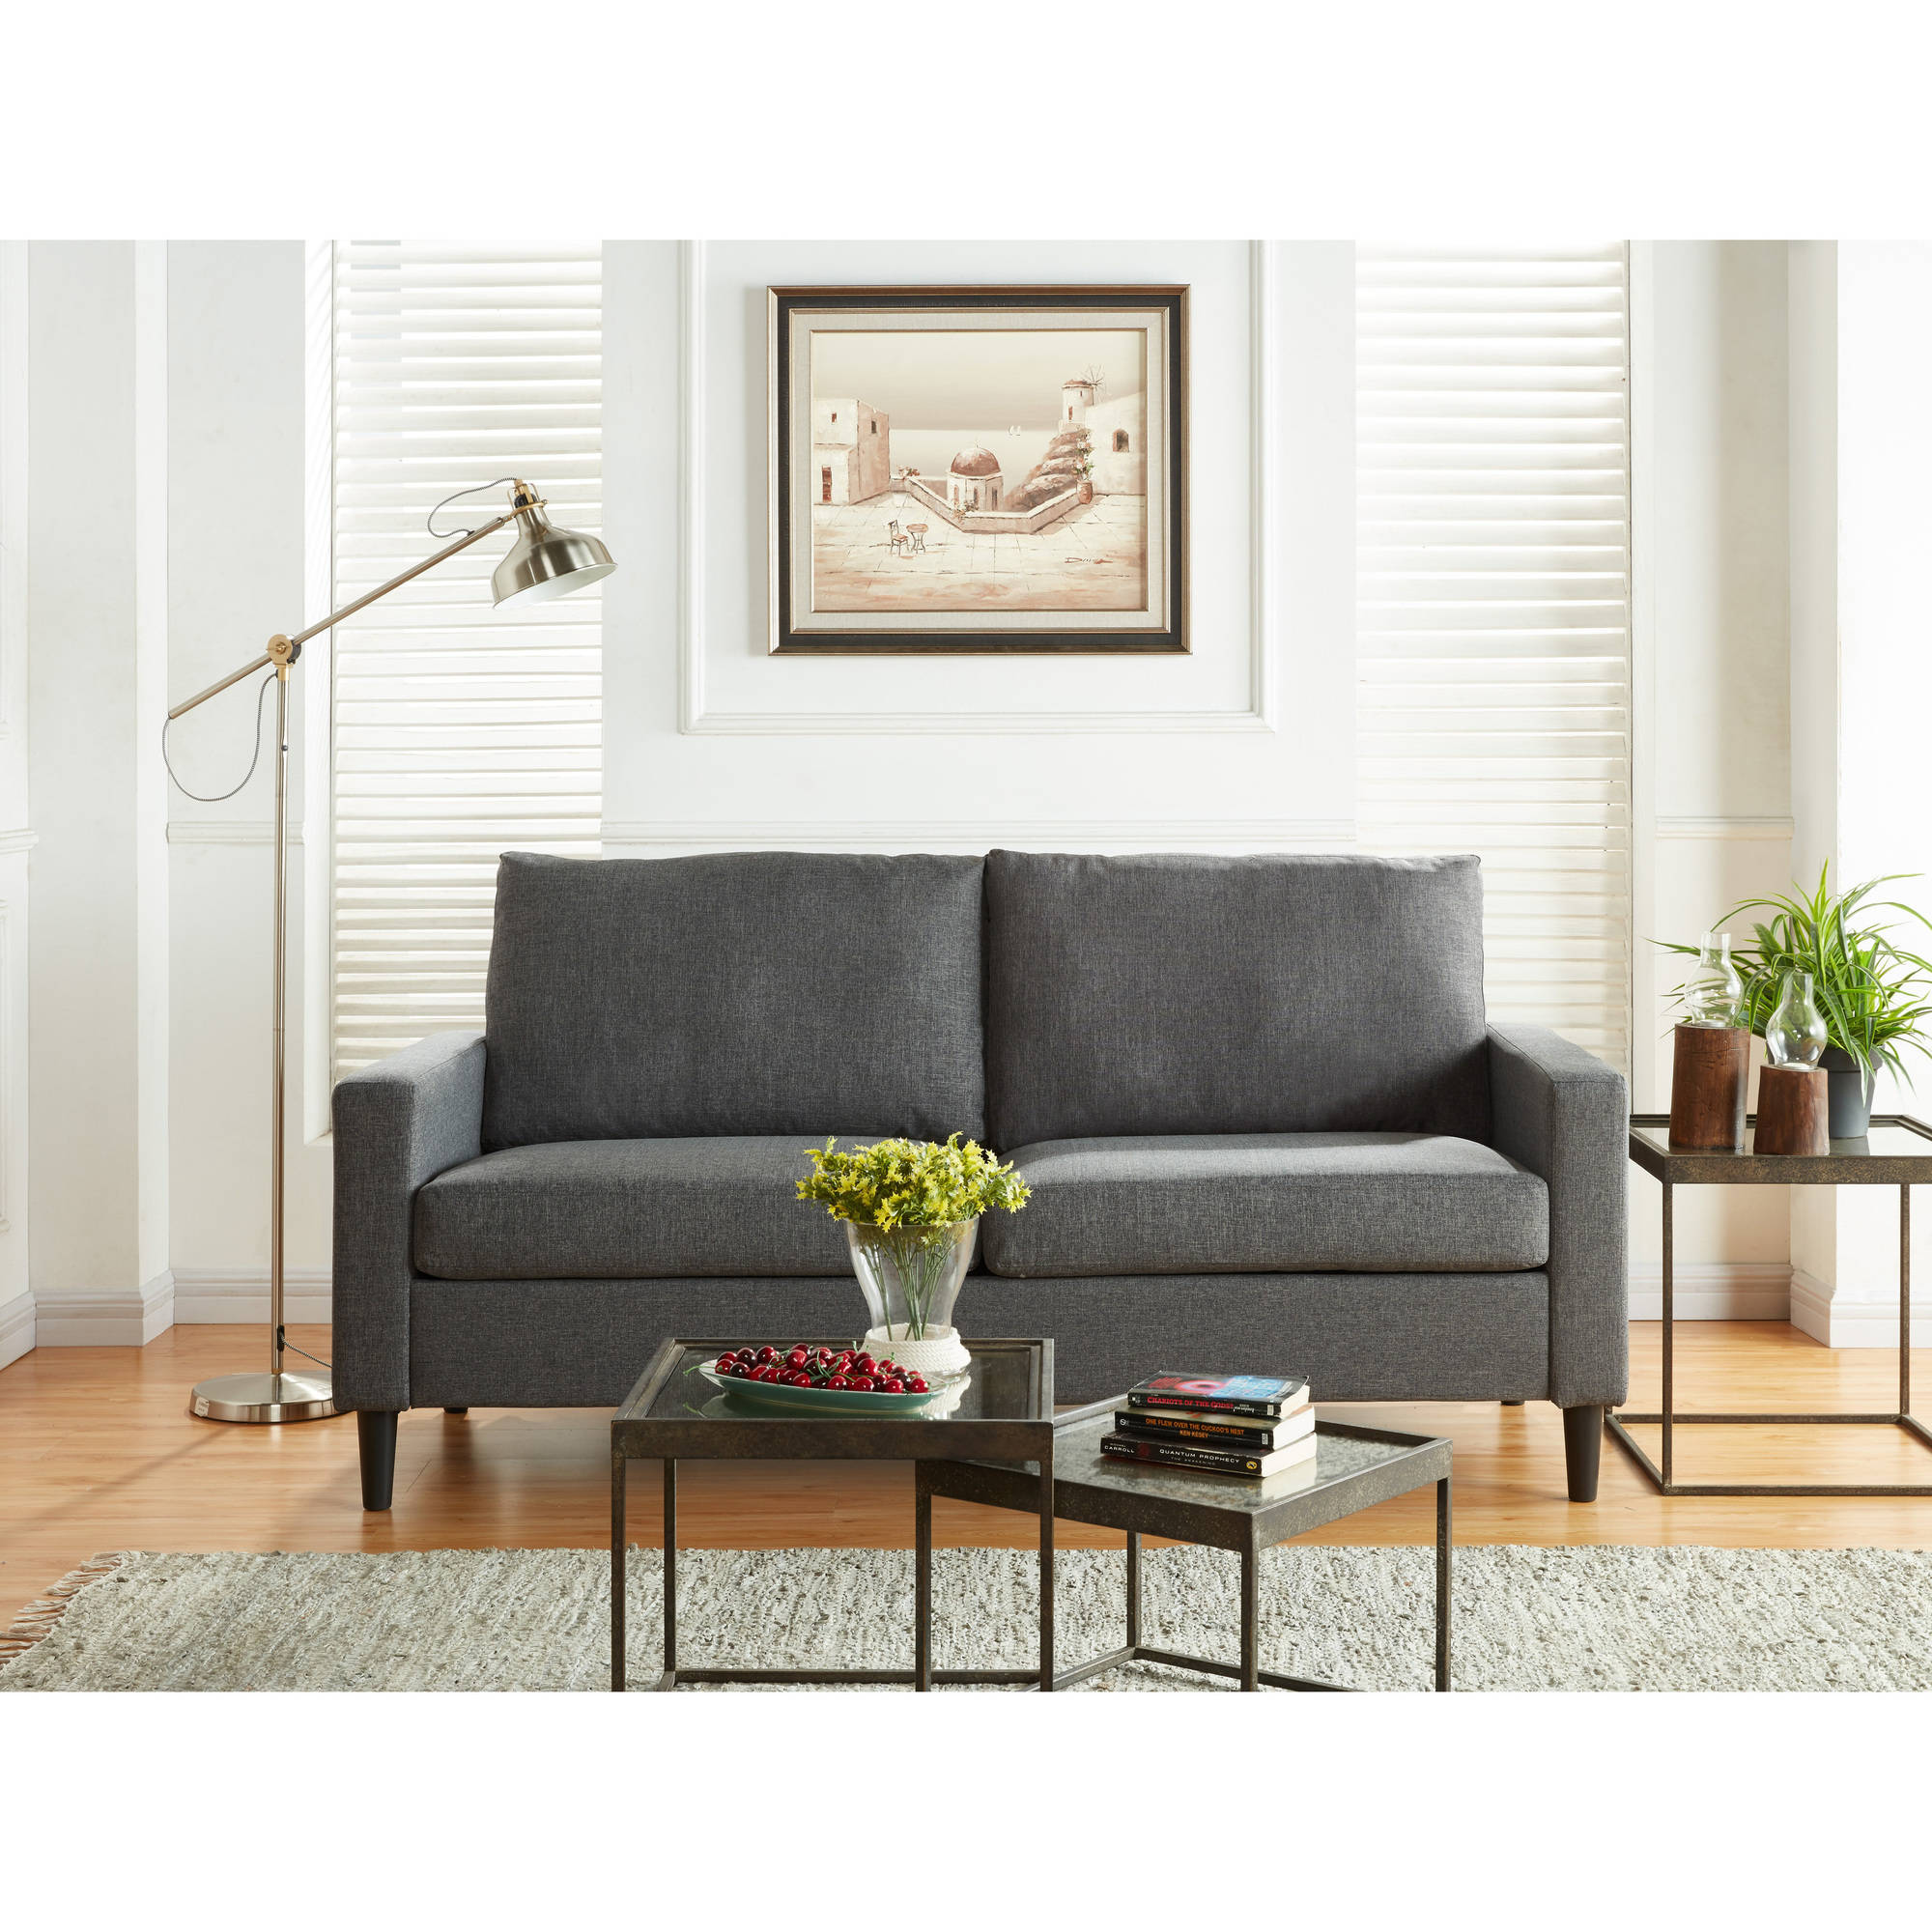 Mainstays Apartment Sofa, Multiple Colors